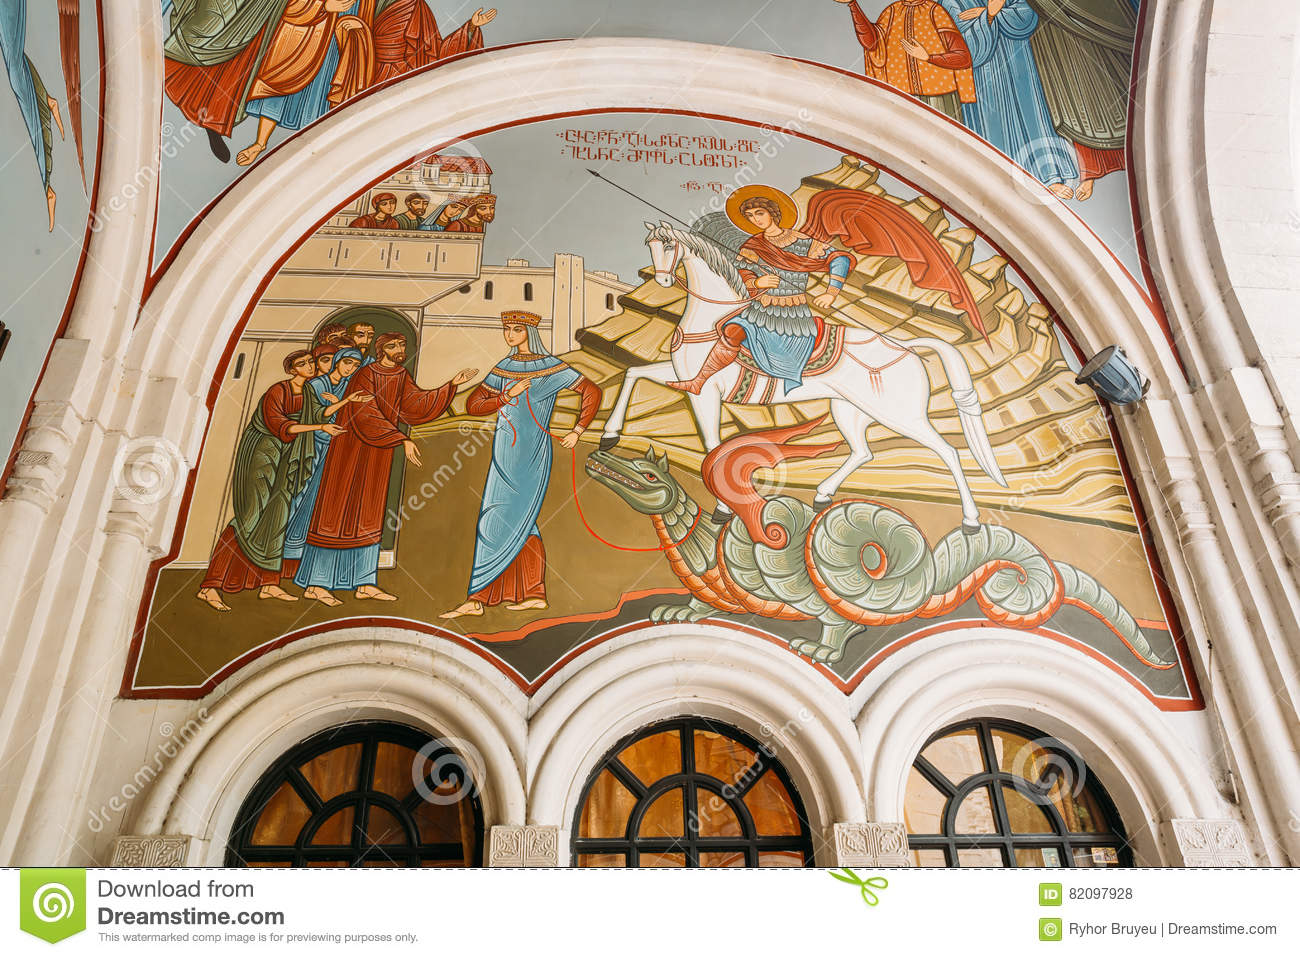 Tbilisi georgia arched fresco wall murals on bible story arched fresco wall murals on bible story interior amipublicfo Image collections